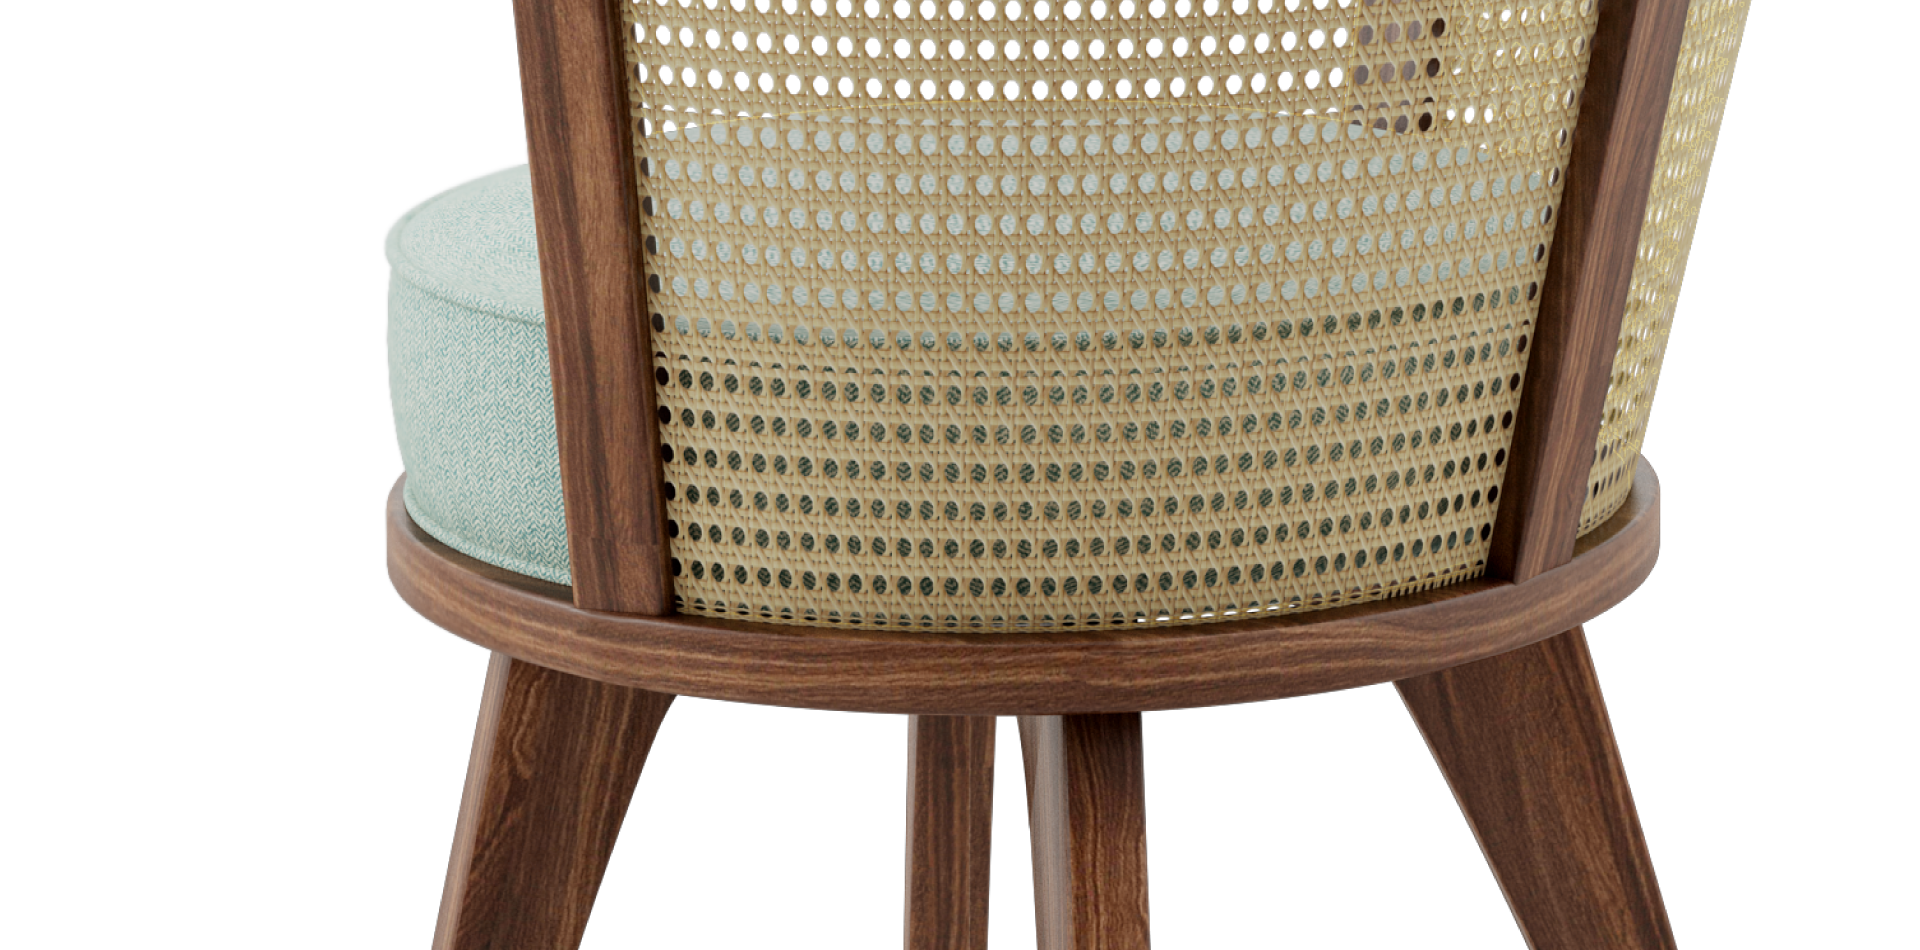 George Dining Chair is made of solid walnut wood enriched with rattan